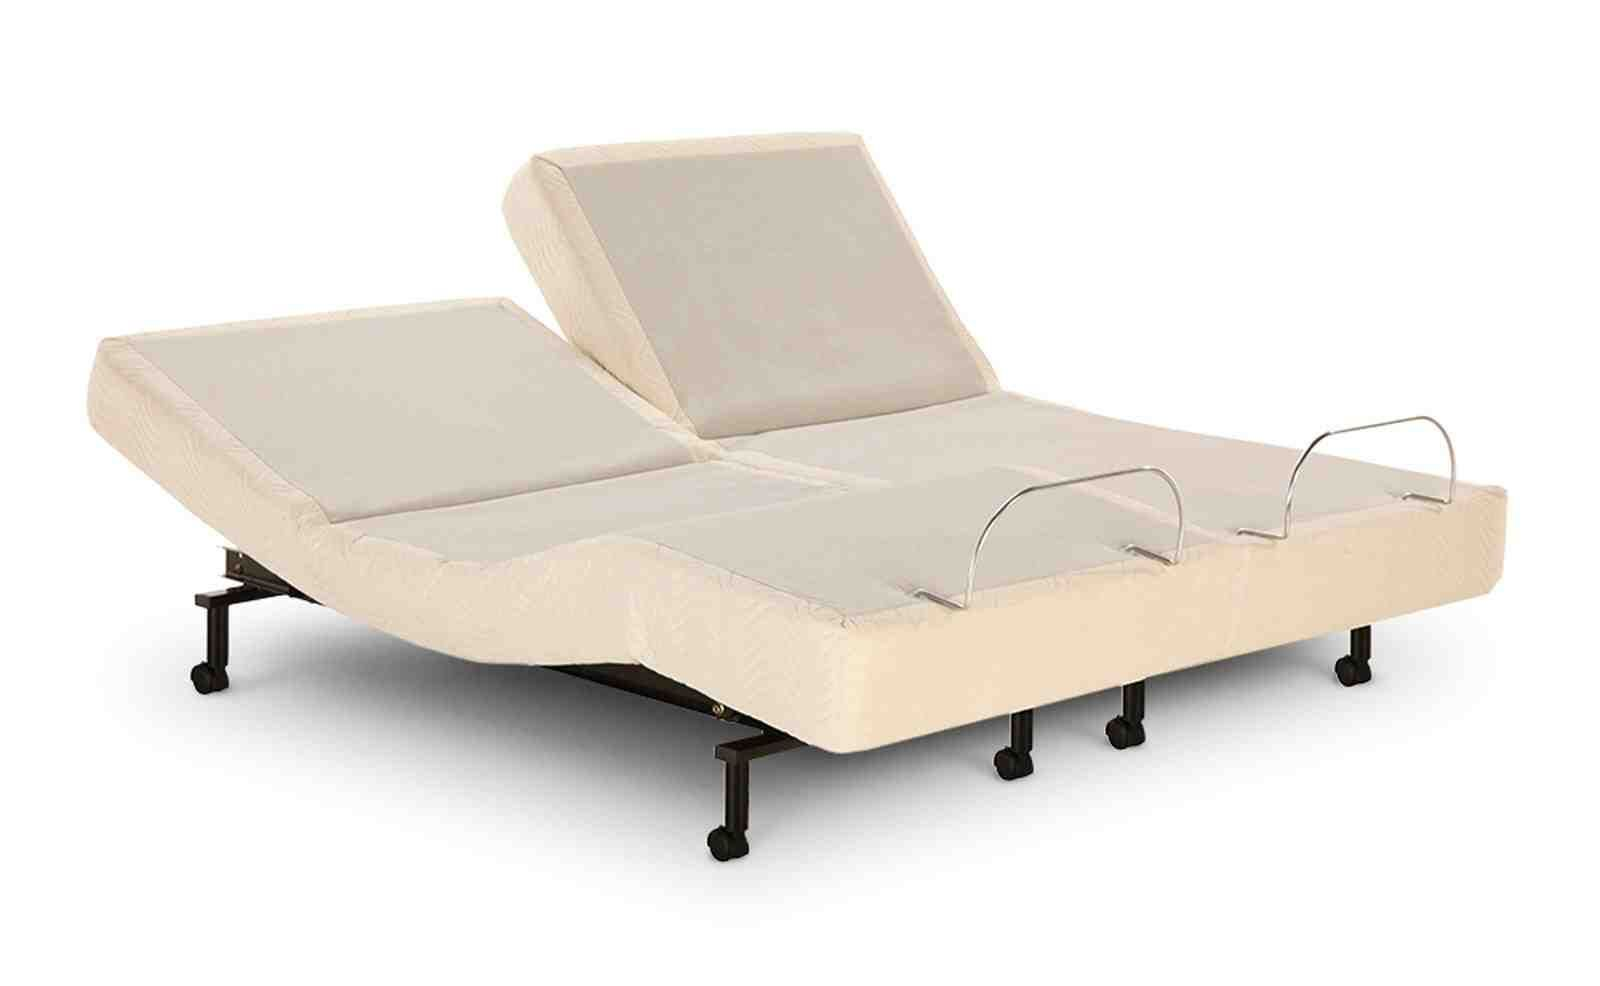 Best Split Cal King Adjustable Bed Adjustable Beds 400 x 300